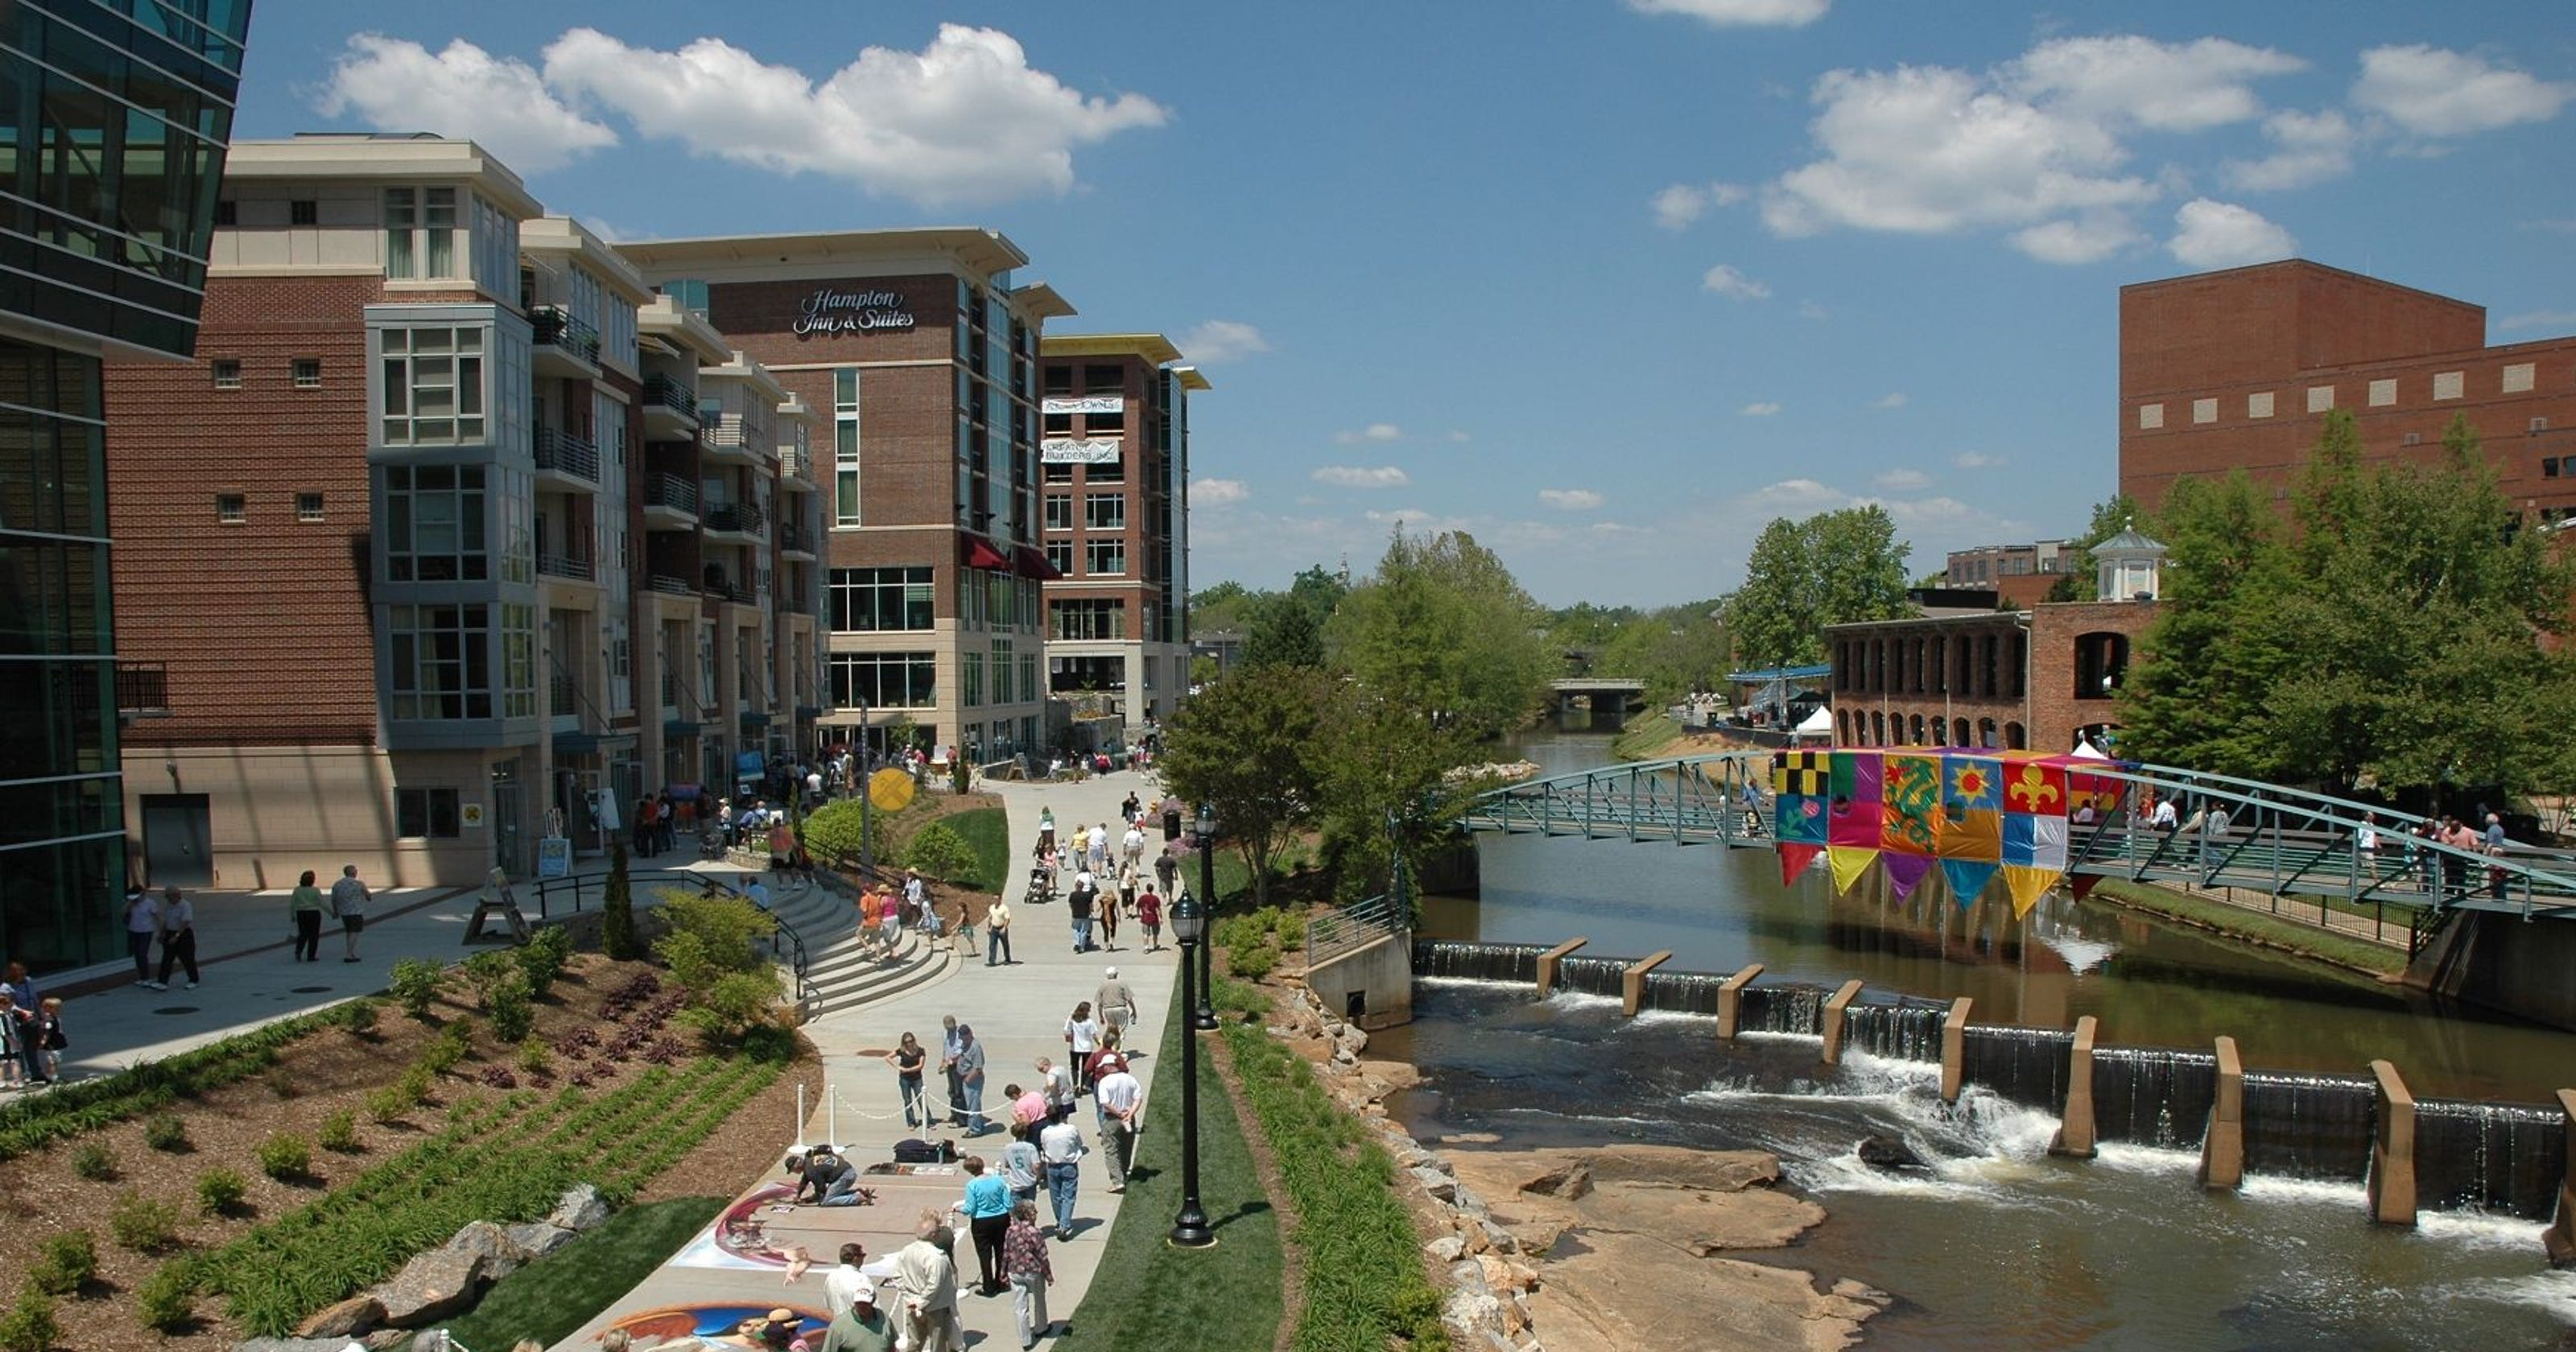 Bureau Open Space 3 Places : The census bureau shows the fastest growing cities in the u.s. are